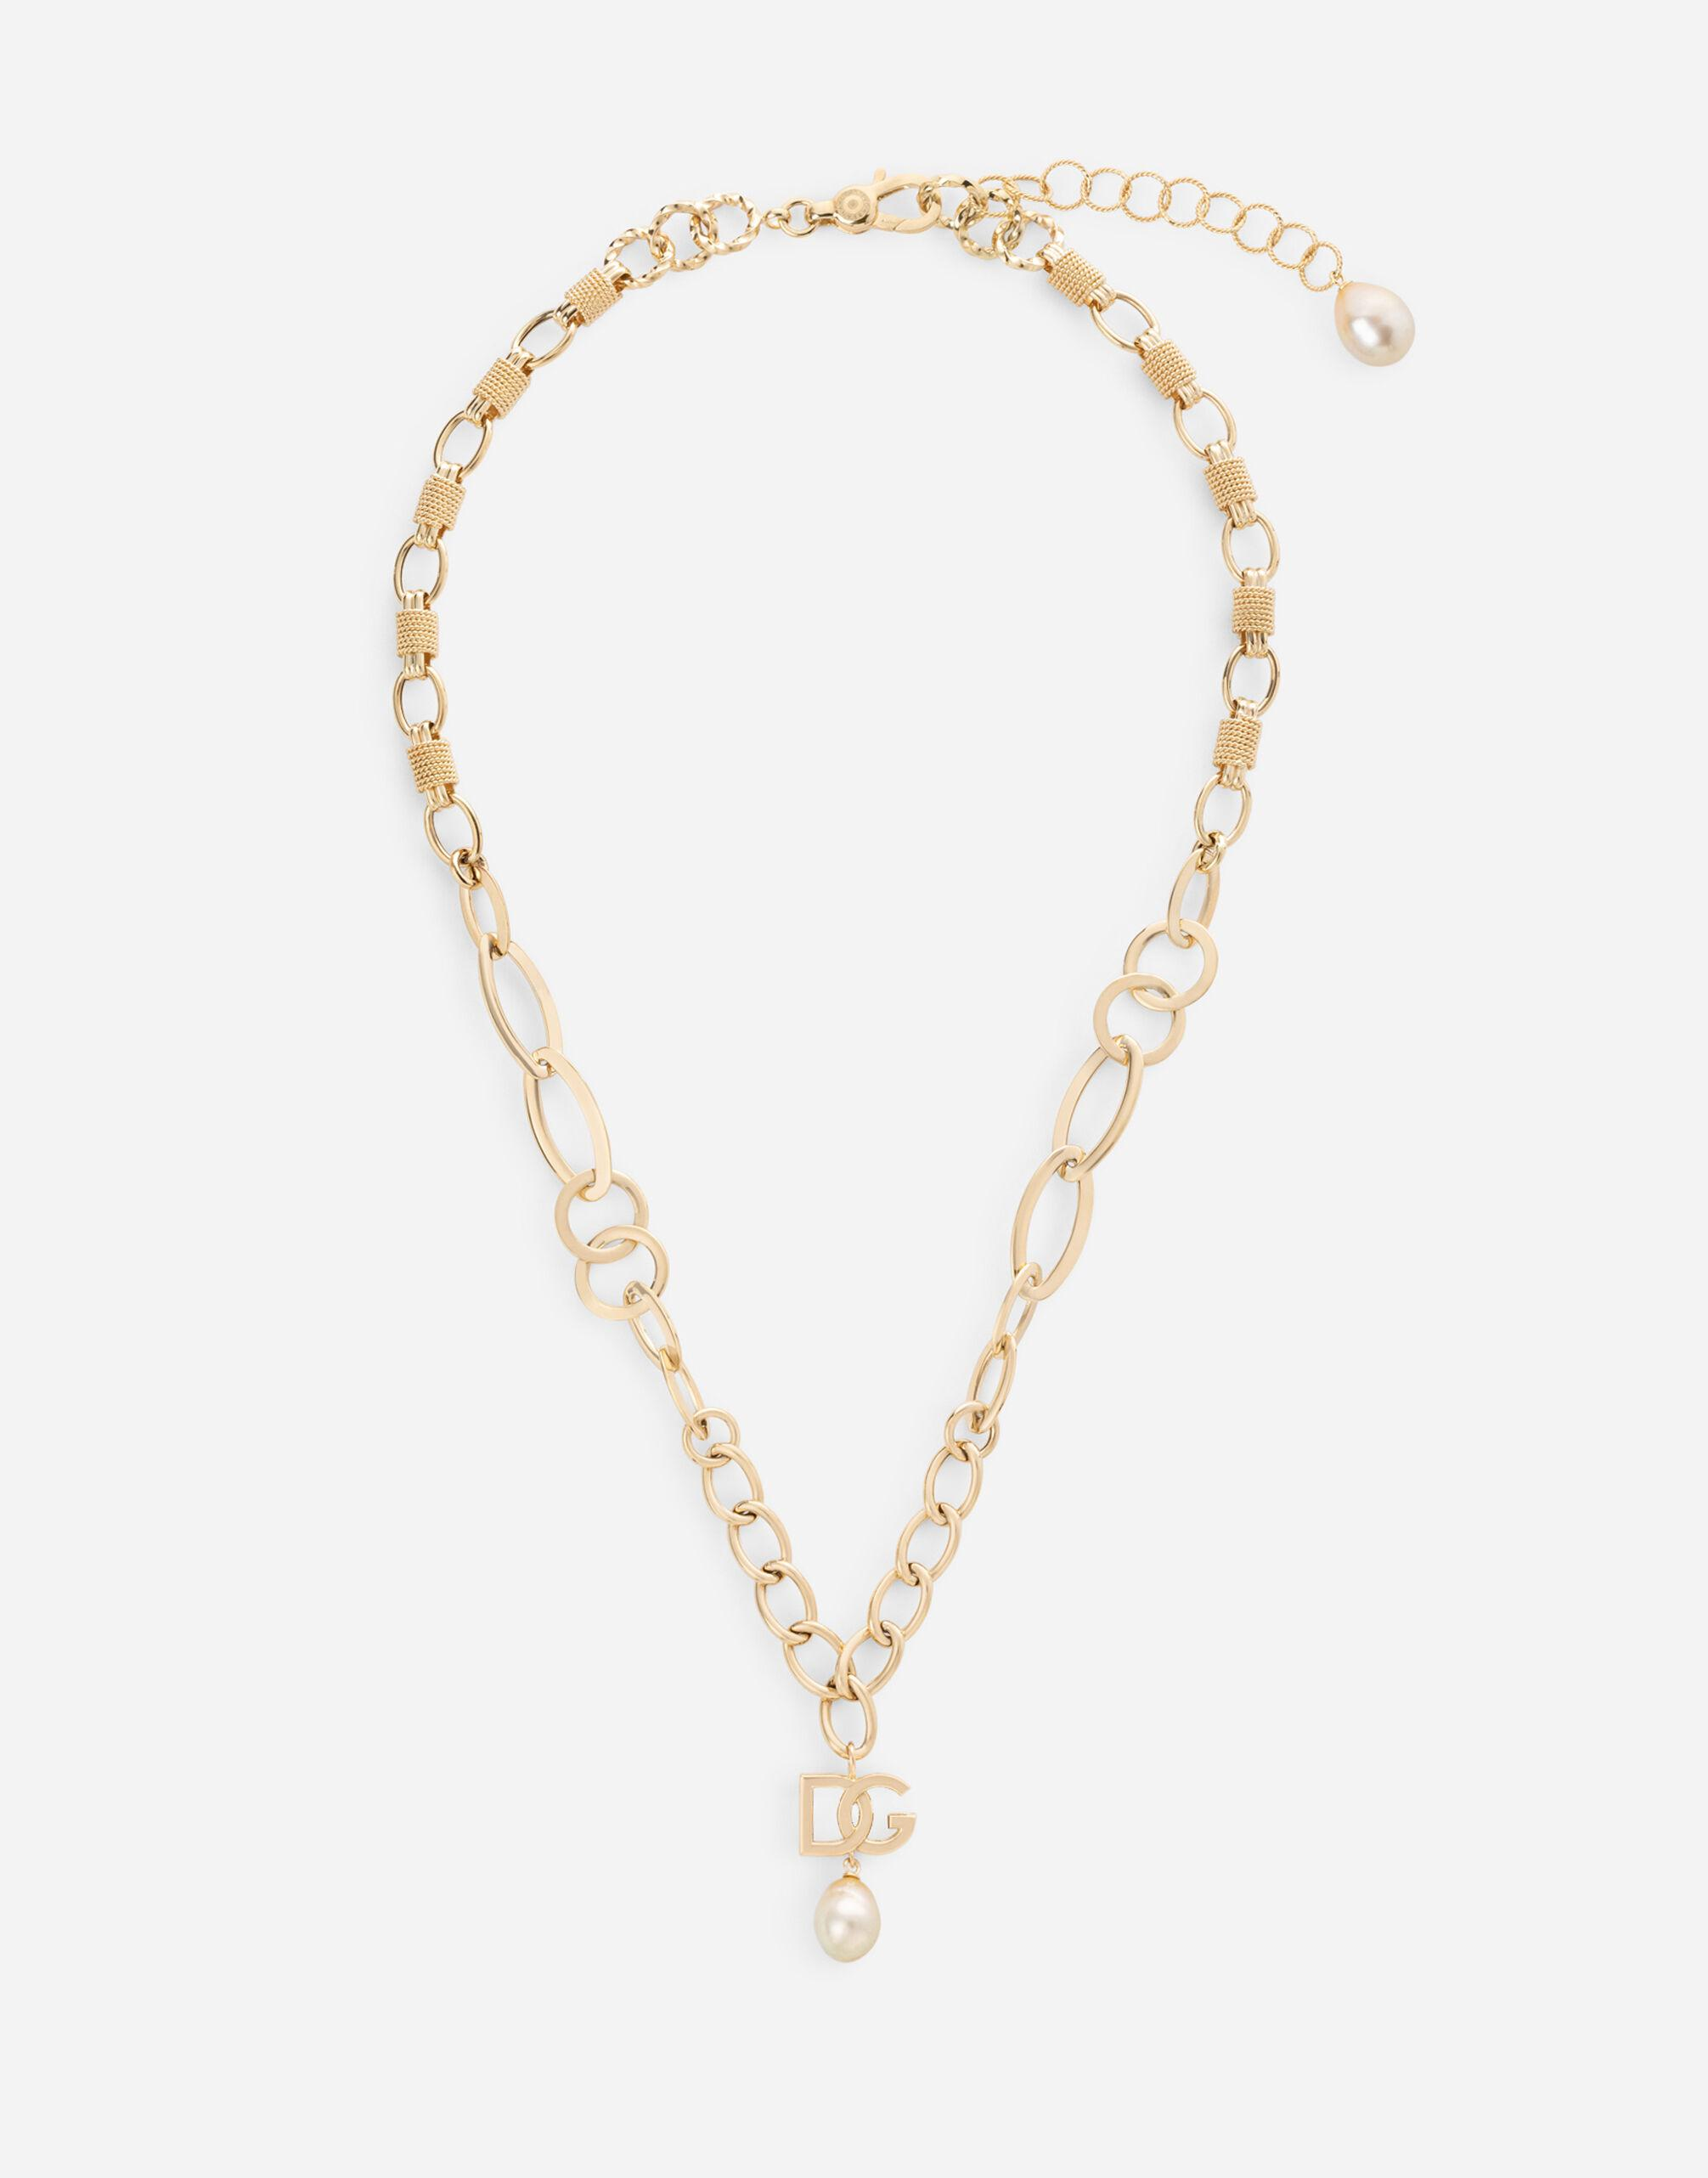 Logo necklace in yellow 18kt gold with pearl